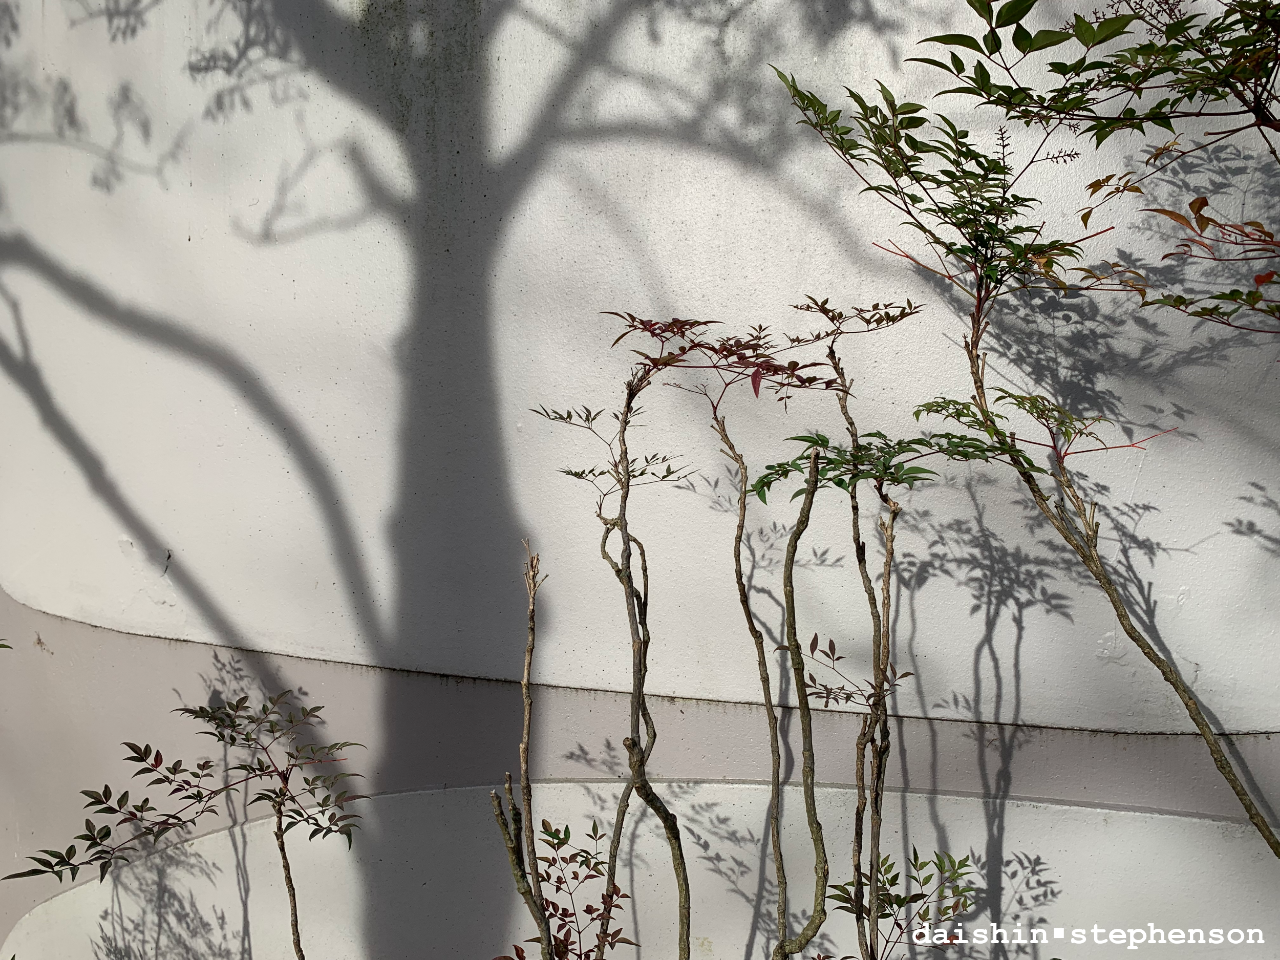 tree shadow on wall, sparse leafed branches